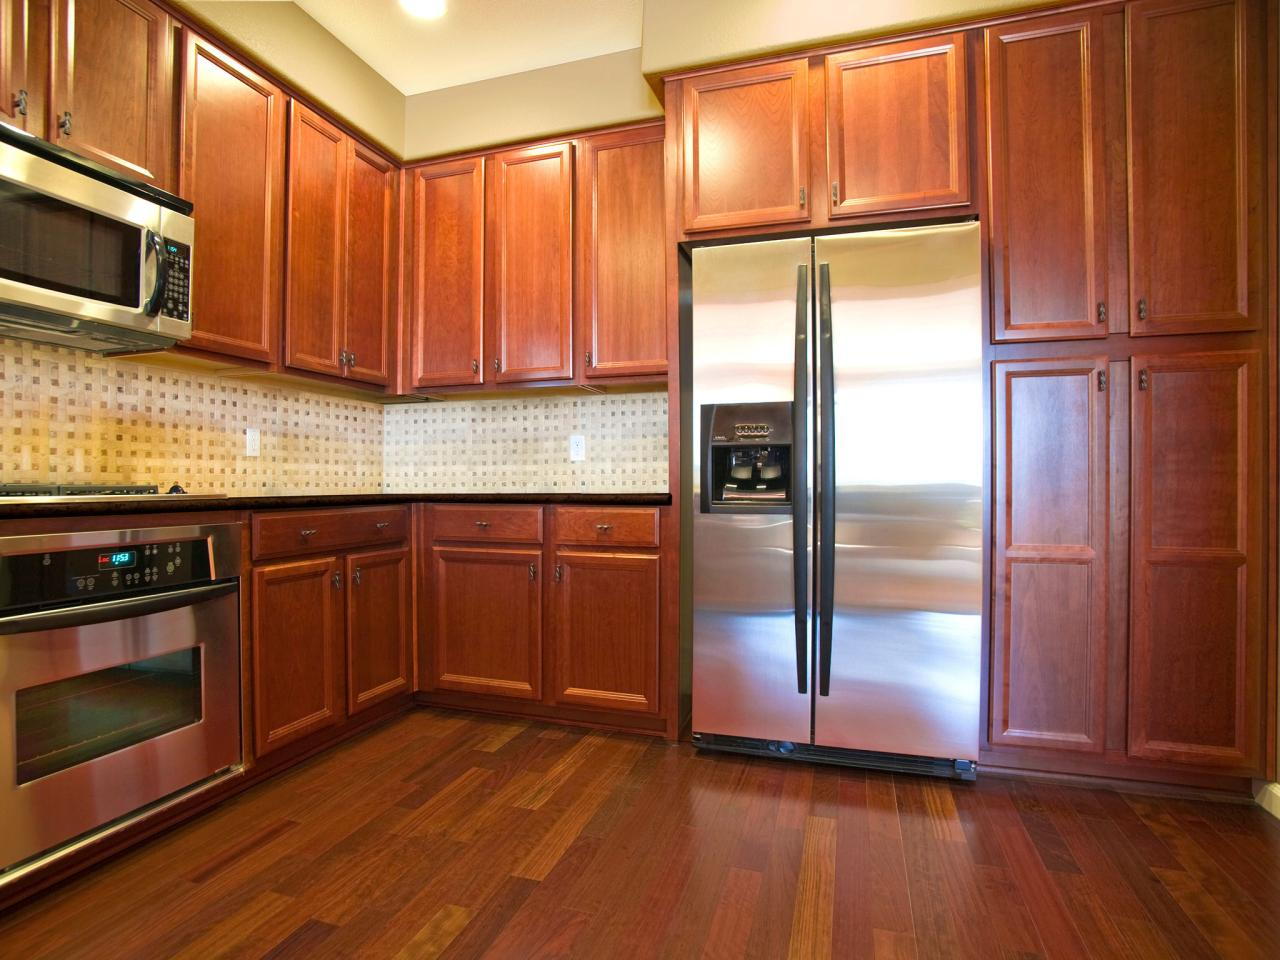 kitchen design ideas oak cabinets photo - 5